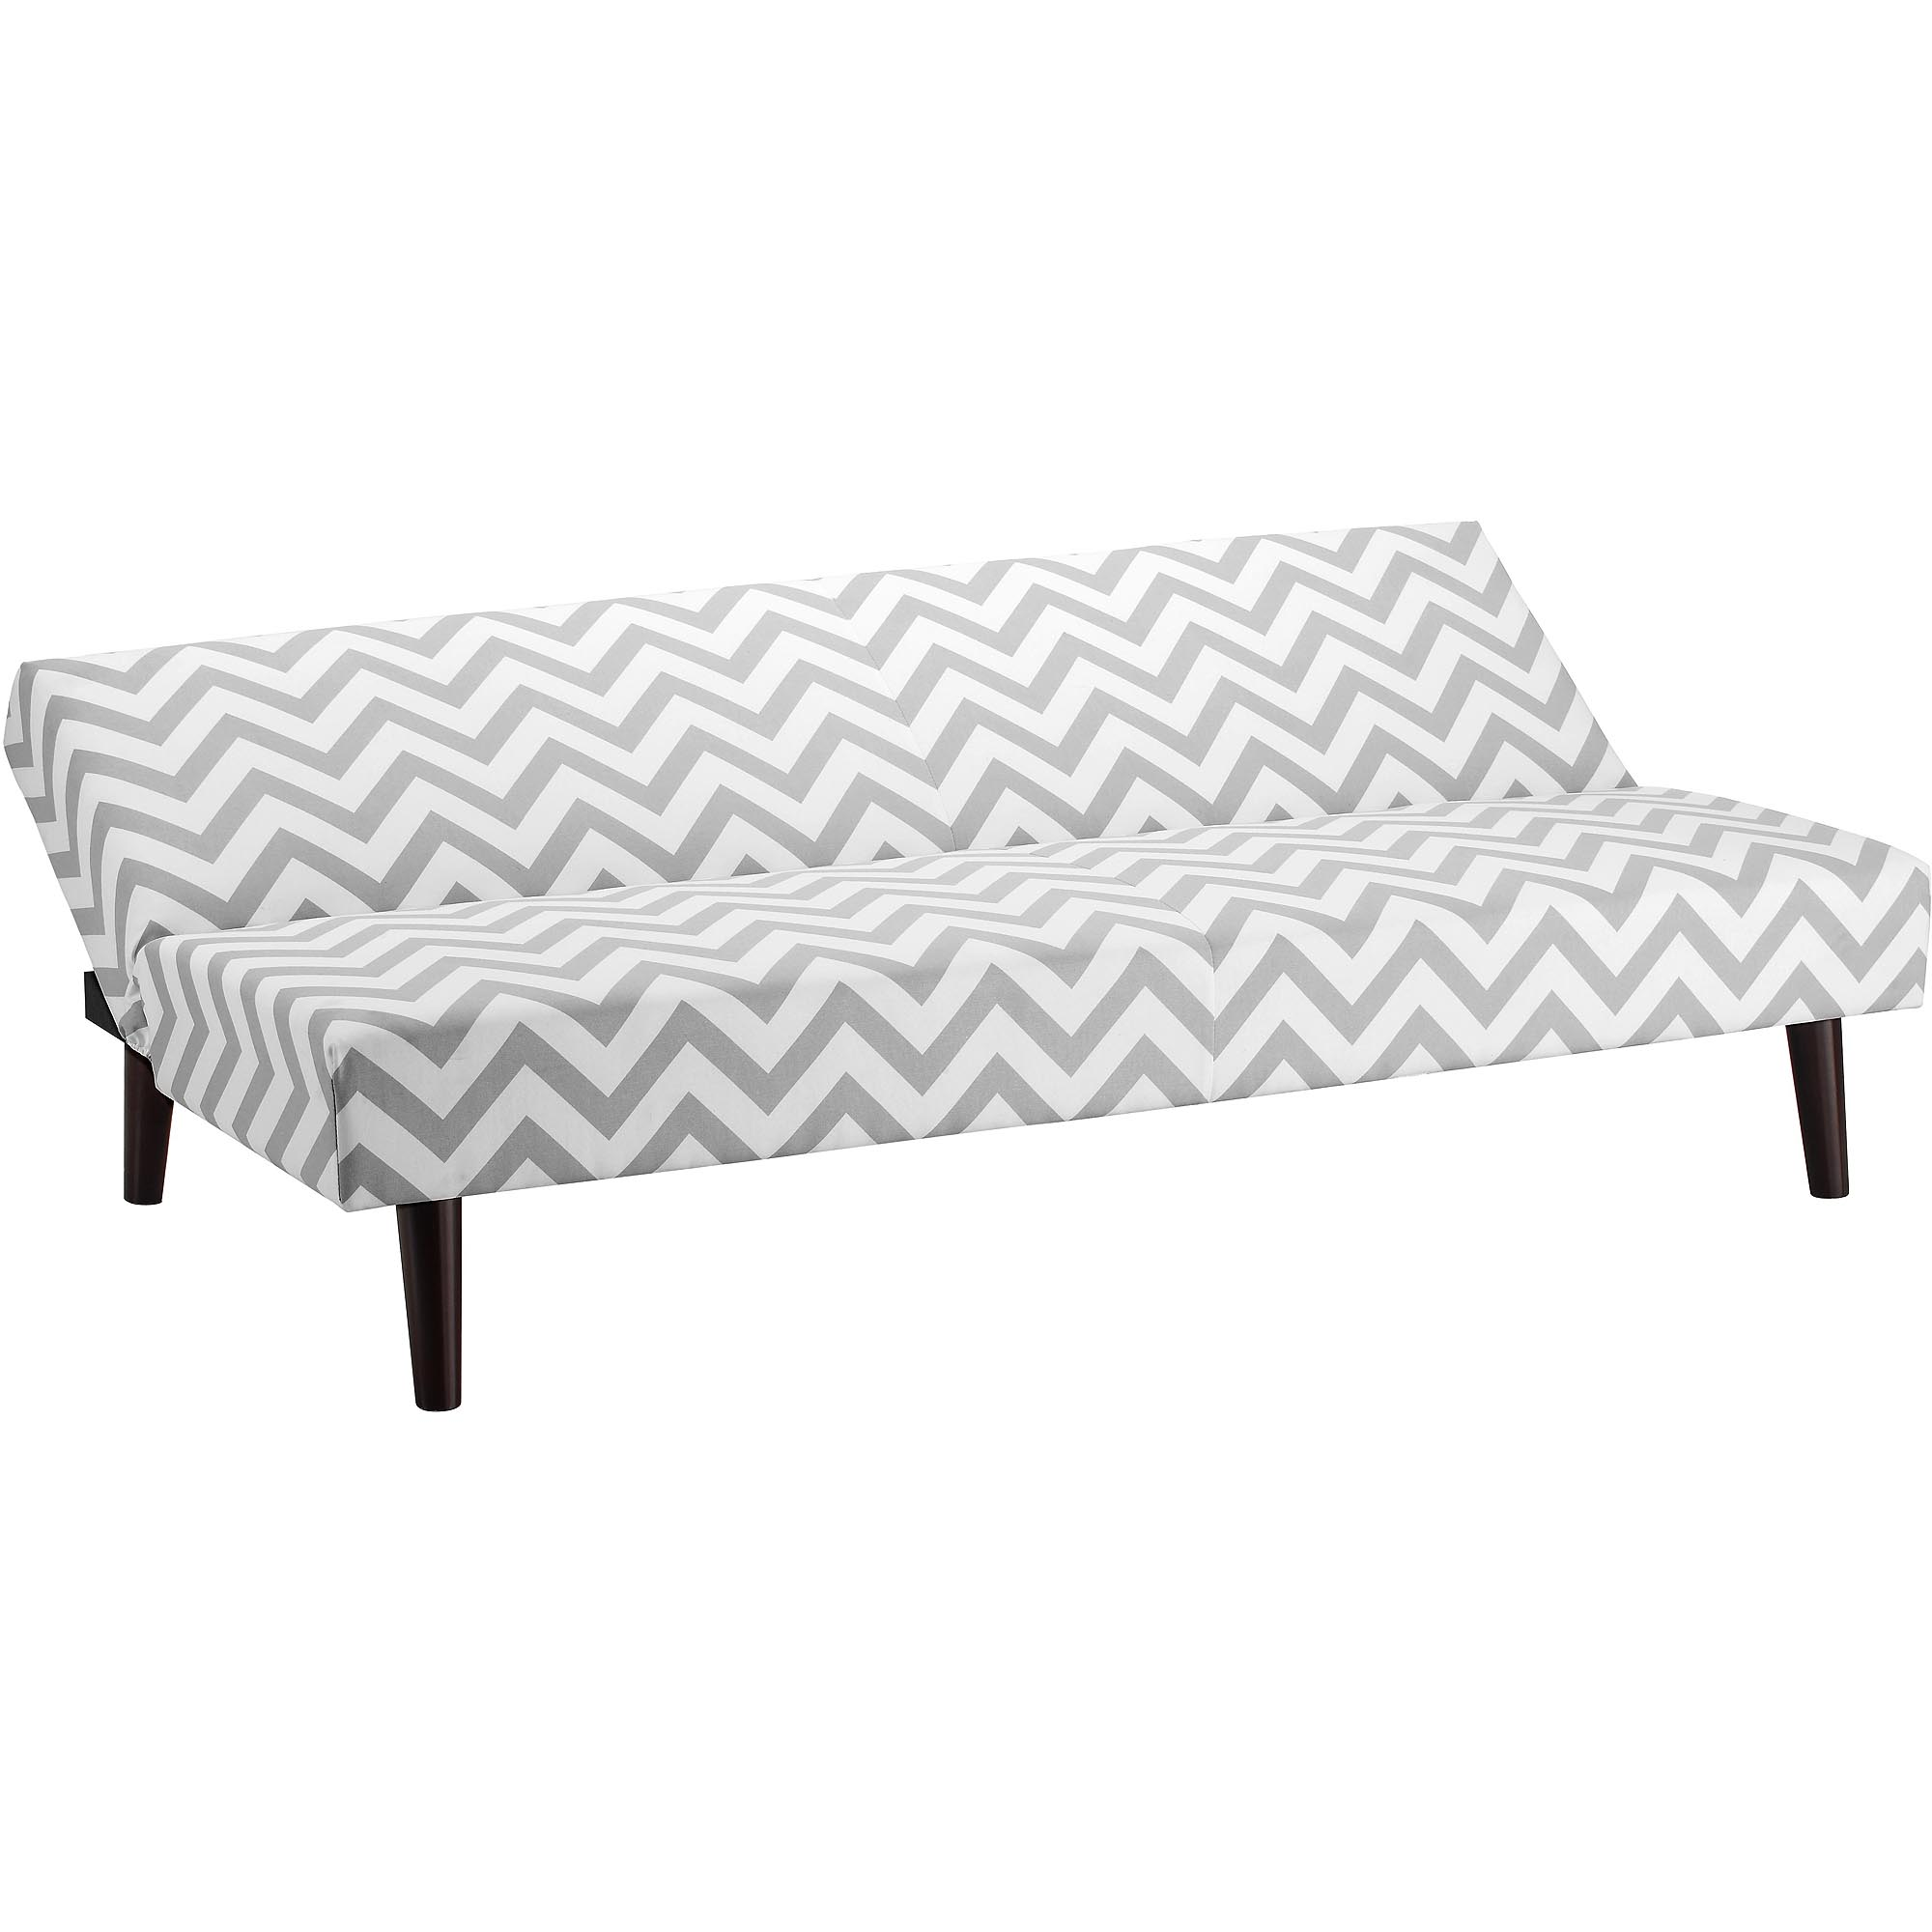 Walmart Futon Prices Loris Decoration